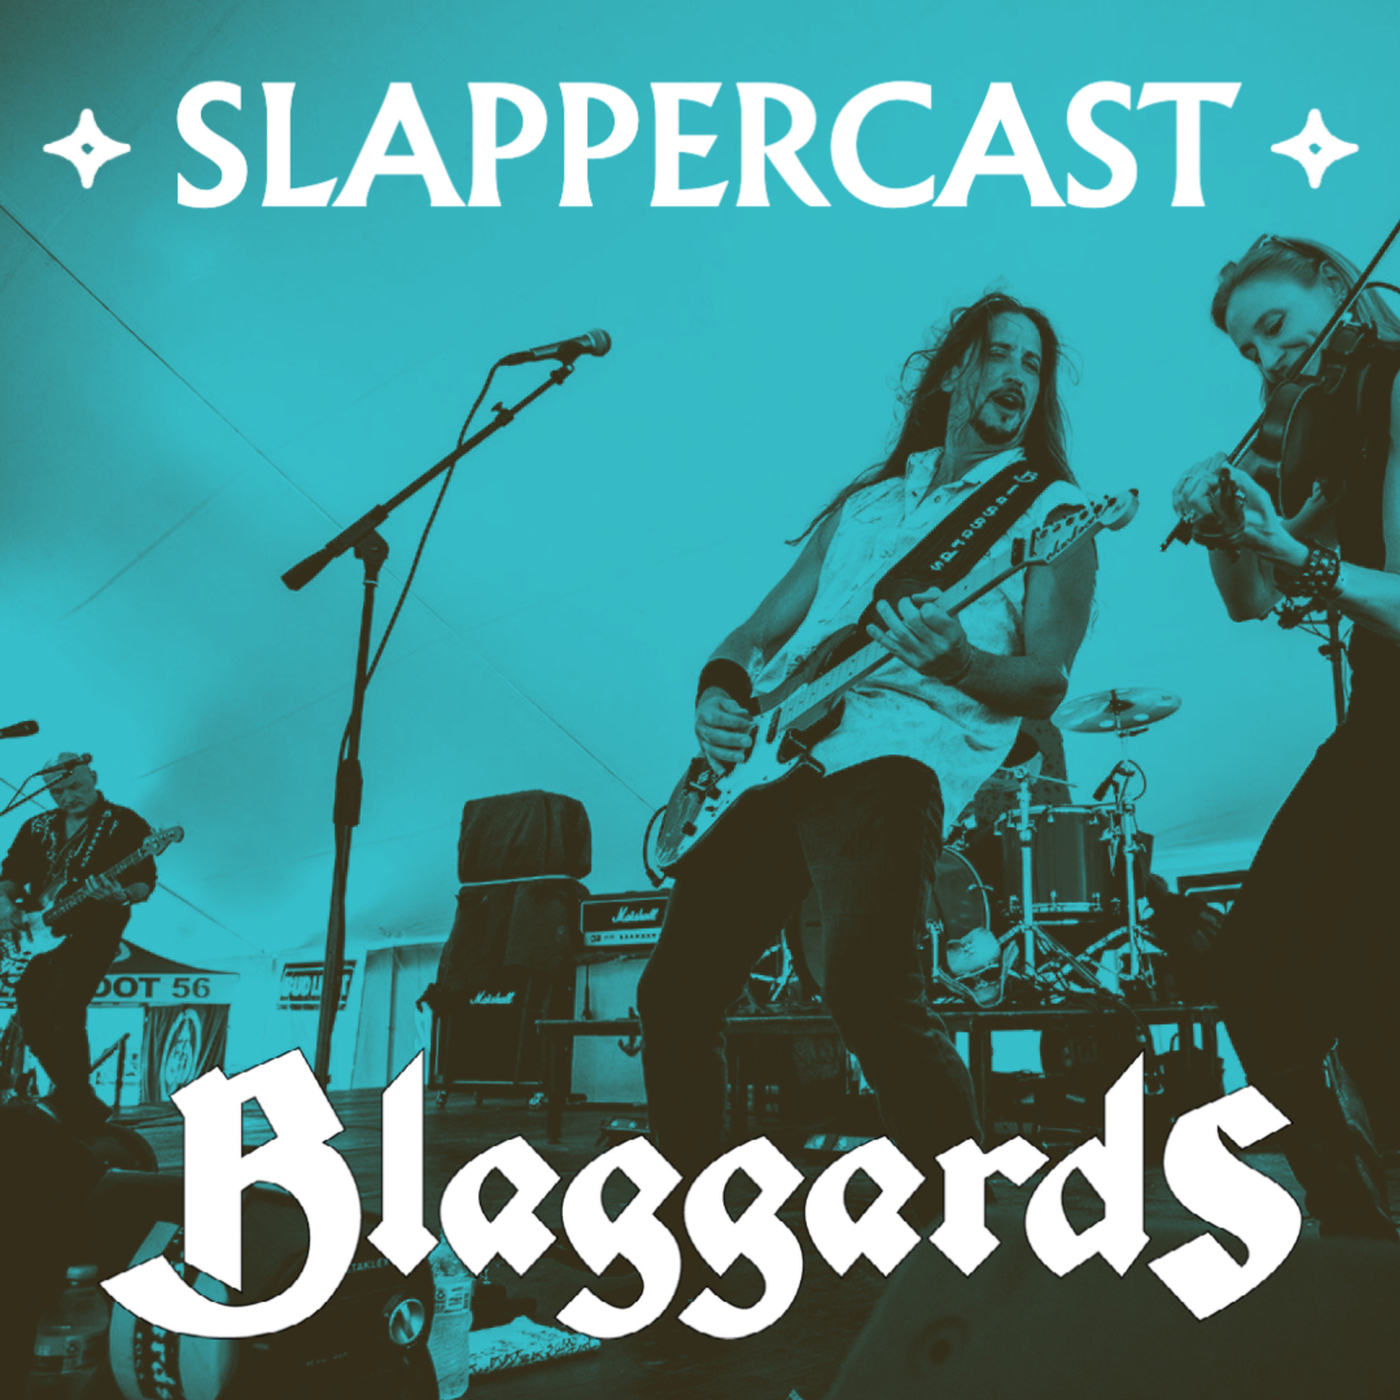 SlapperCast: a weekly talk show with Blaggards 60: Difficult Listening Hour